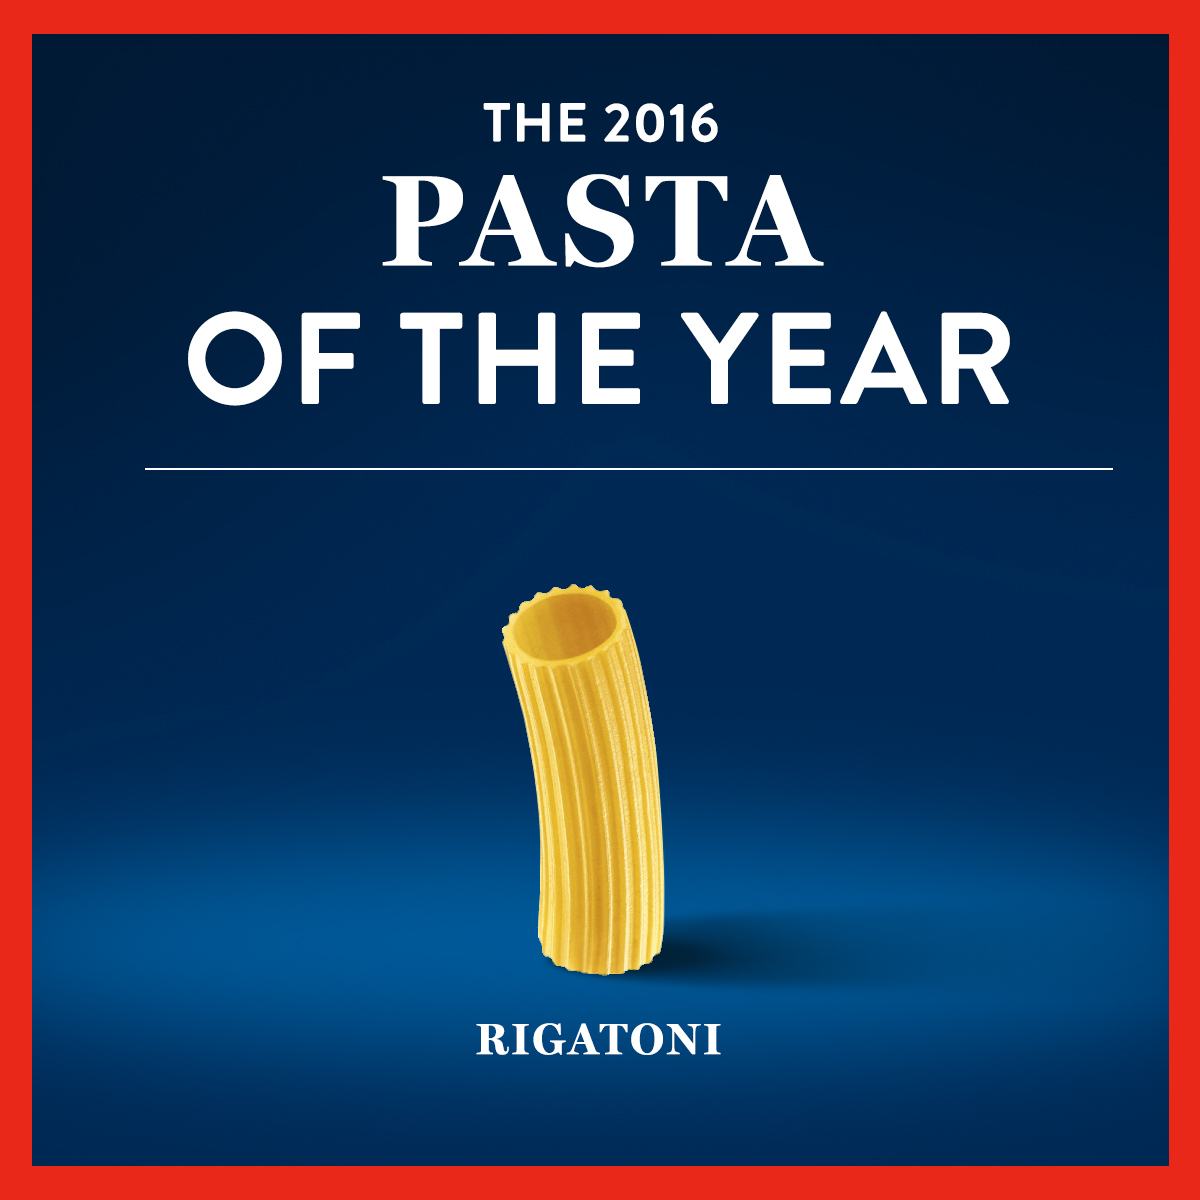 Rigatoni is 2016 Pasta of the Year